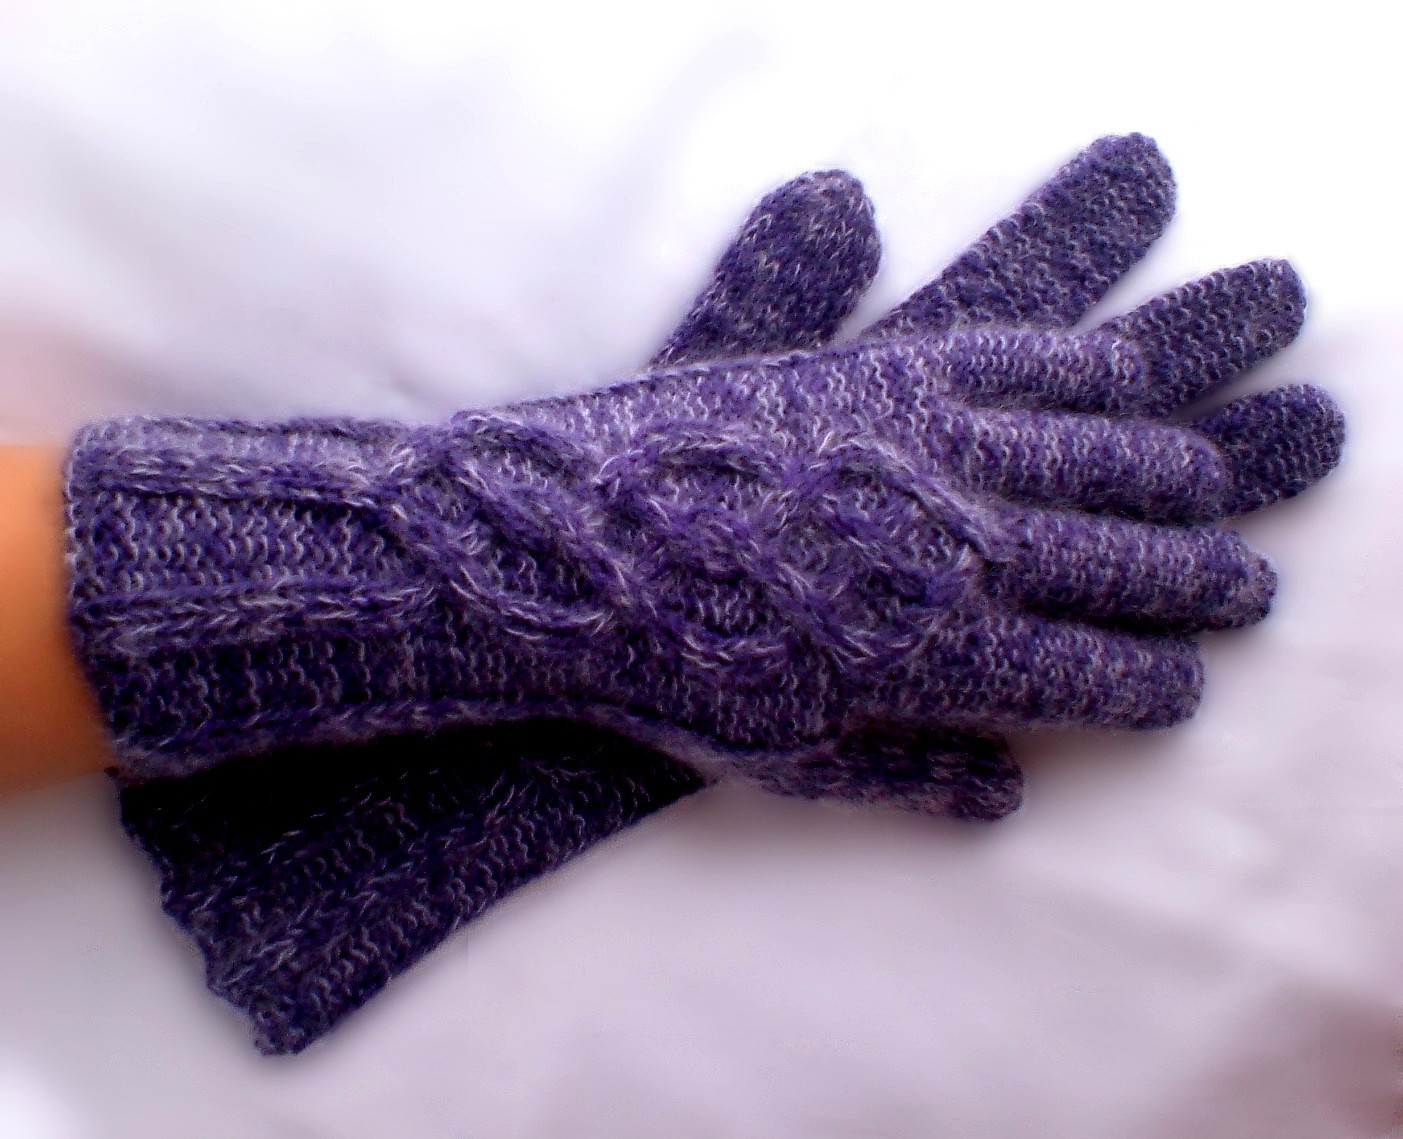 Knitted Glove Patterns : knitting gloves-Knitting Gallery